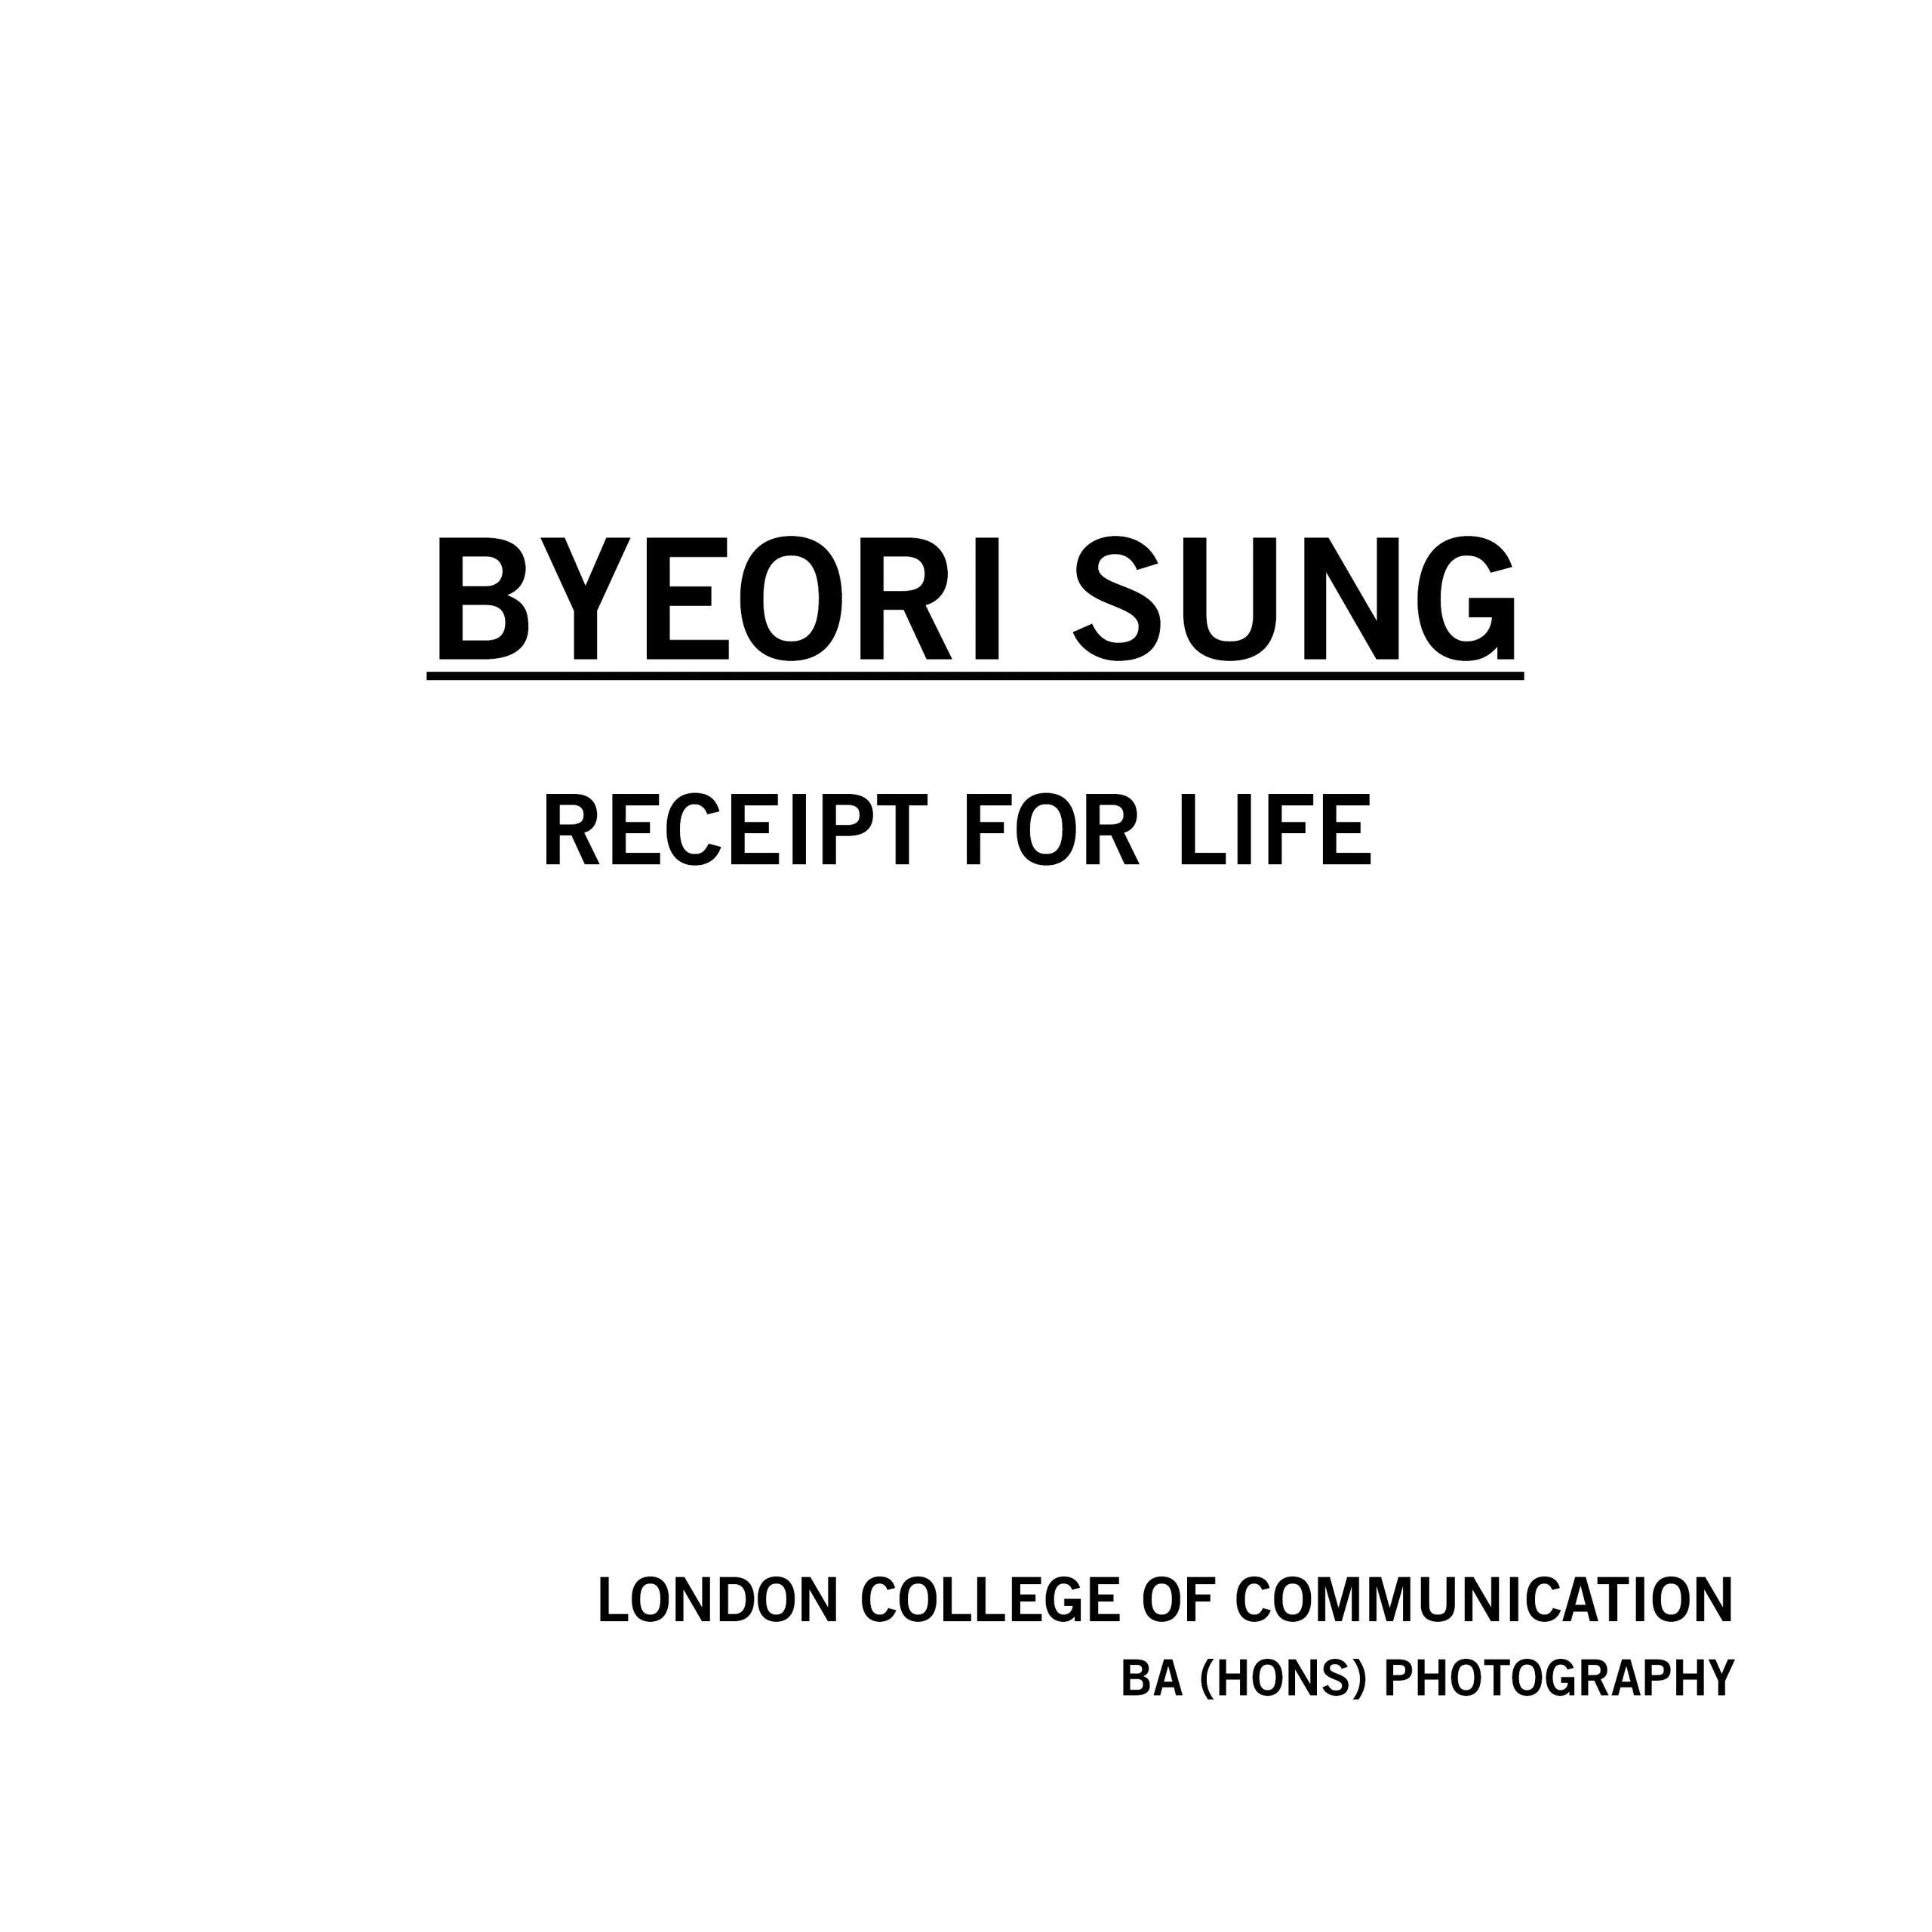 Byeori Sung - Receipt for life